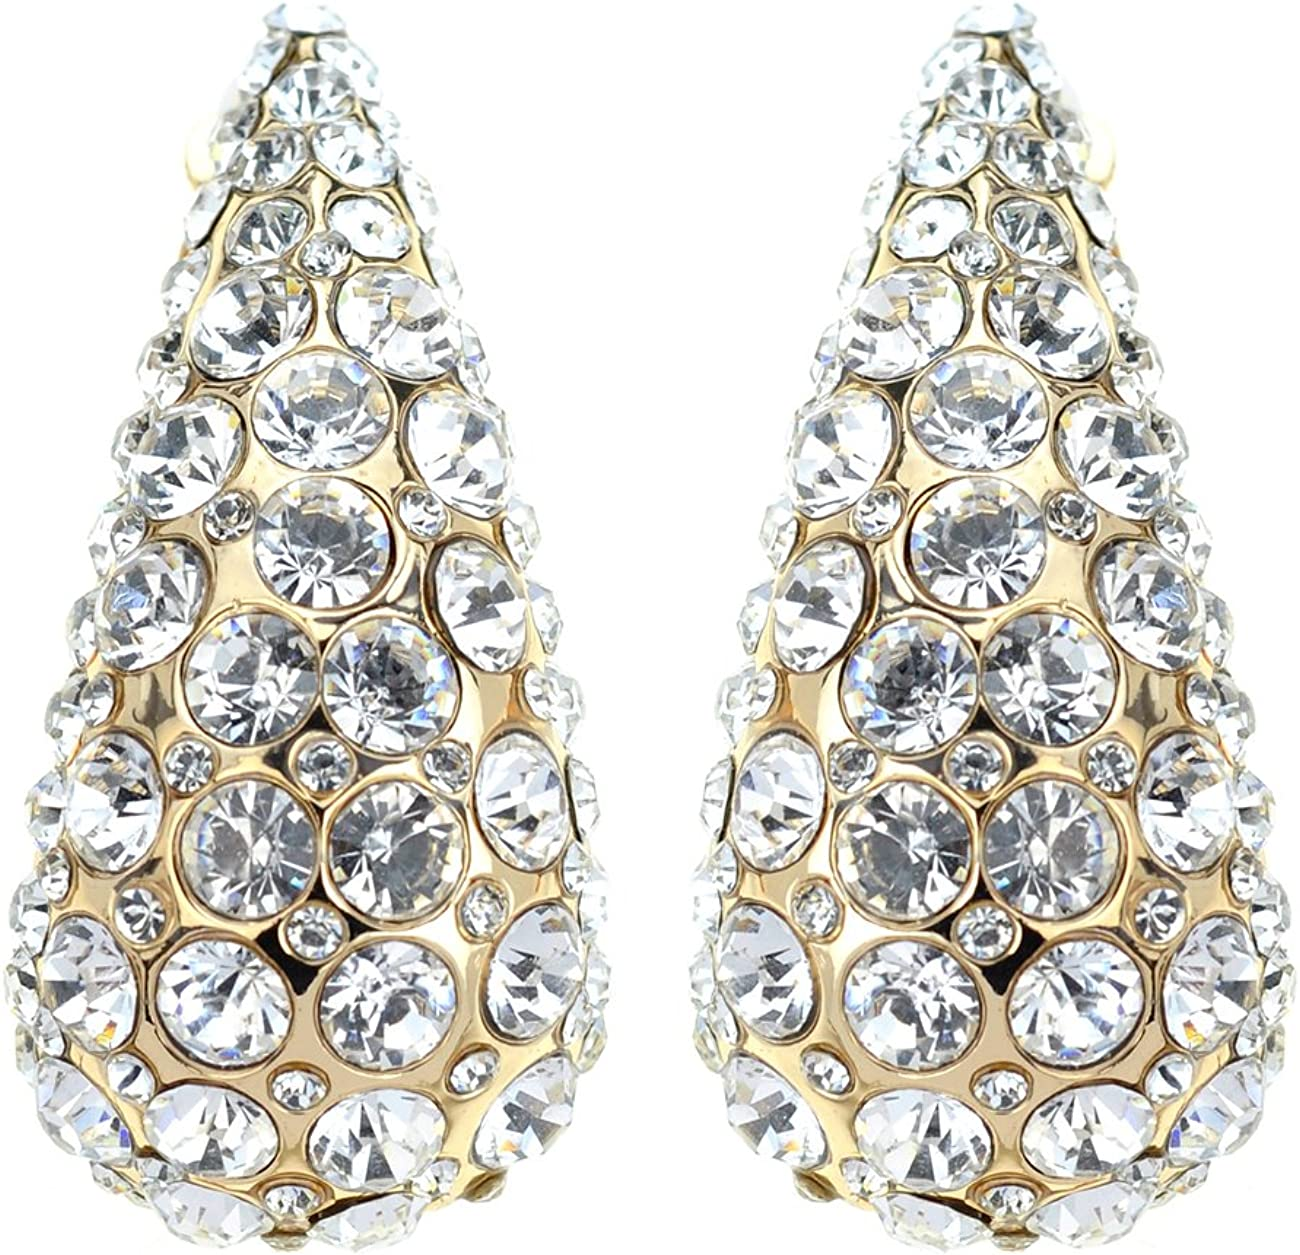 Women's Evening Gala Bridal Prom Wedding Clip On Earrings - Pointed Arch